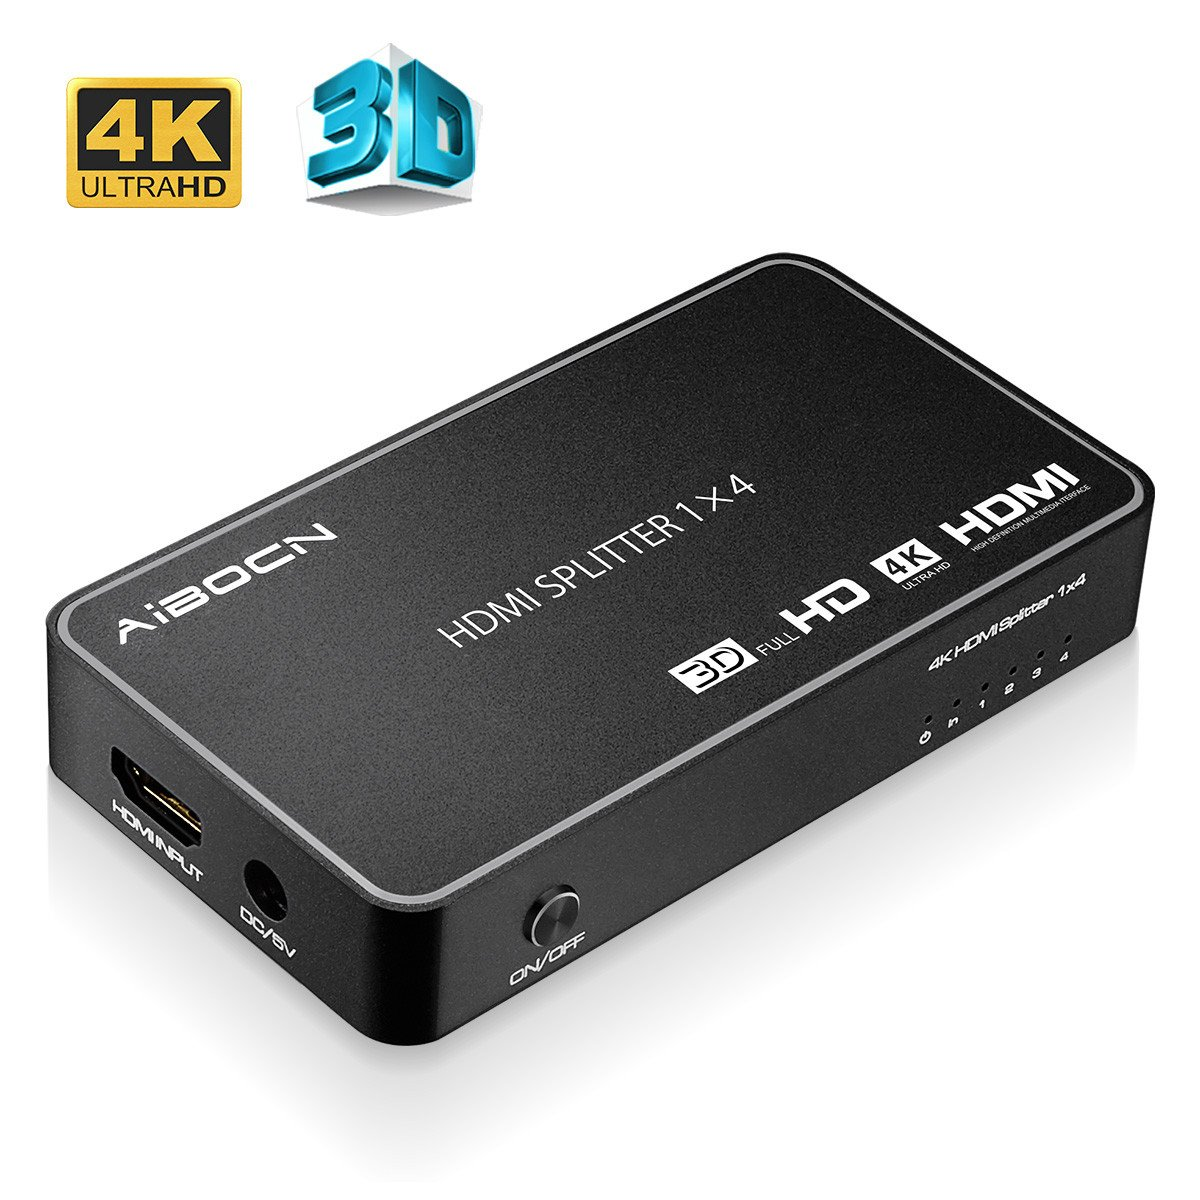 EBL HDMI Splitter Répartiteur Commutateur 4 Ports (Supporte 3D 4K, 2K, PC, Macbook, Notebook, Lecteur Blu-ray, TV HD, DVD HD, Moniteur, Projecteur, Audio) - Noir